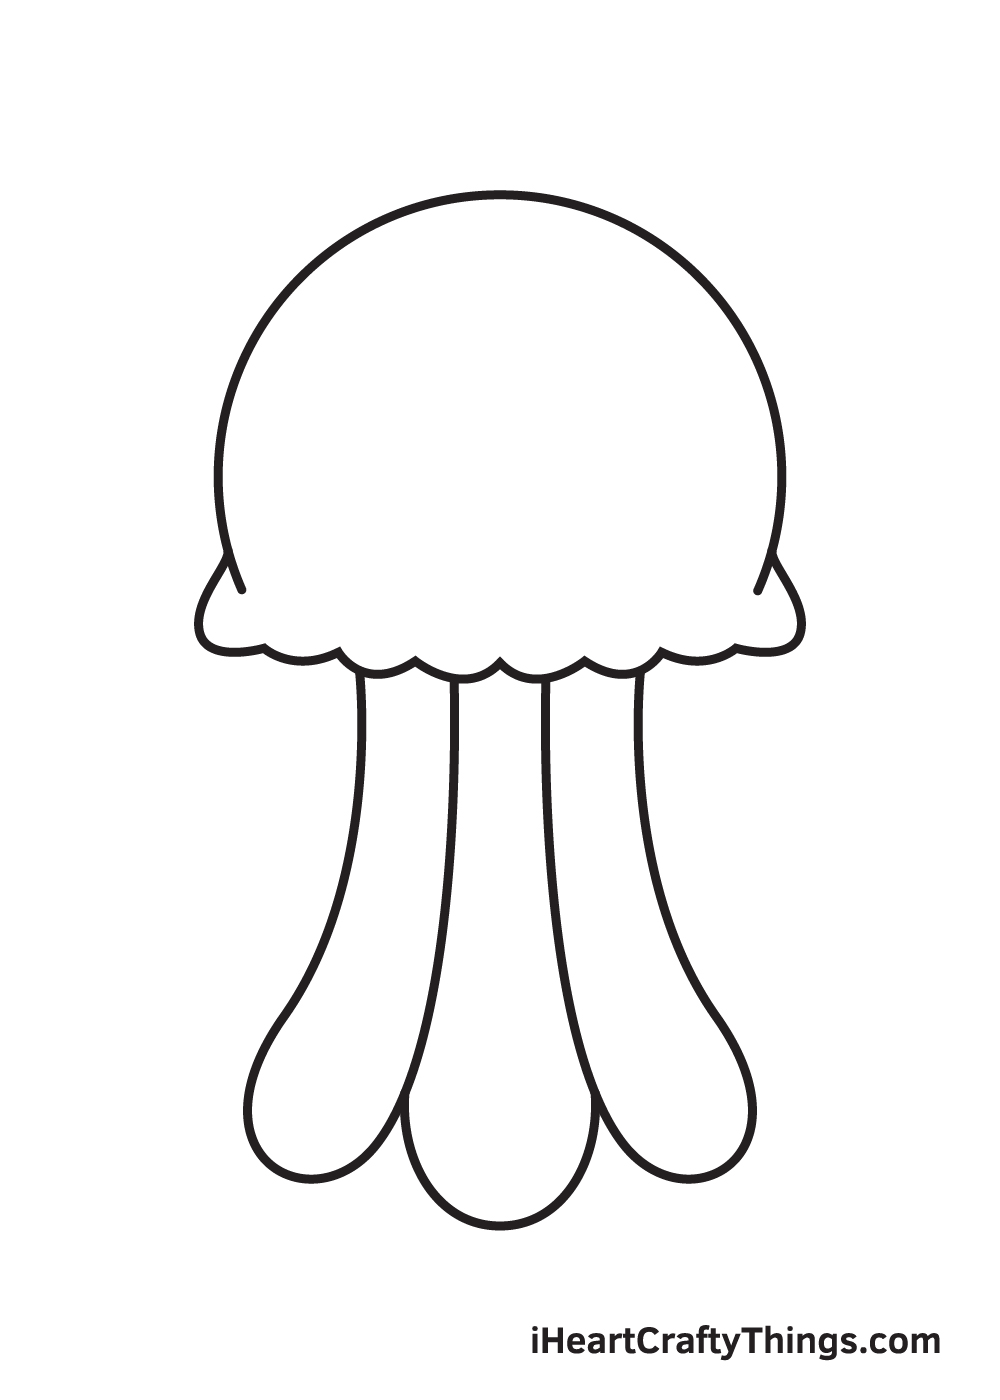 jellyfish drawing step 5